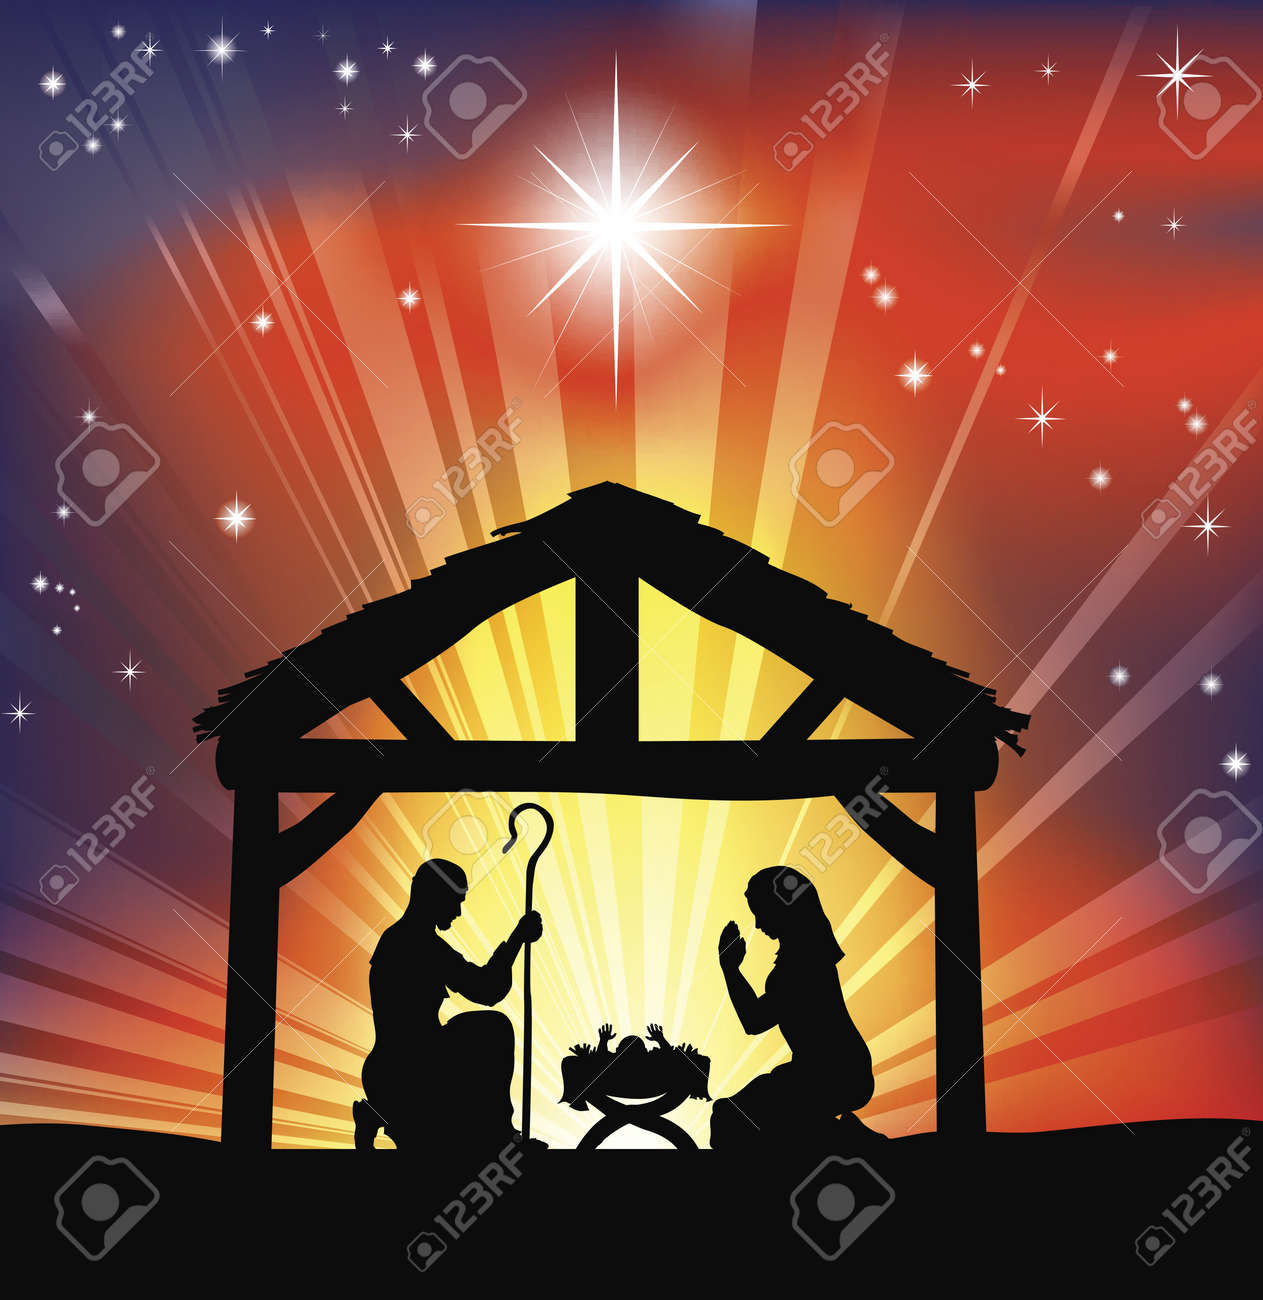 Christmas Nativity Stock Images, Royalty-Free Images &amp- Vectors ...